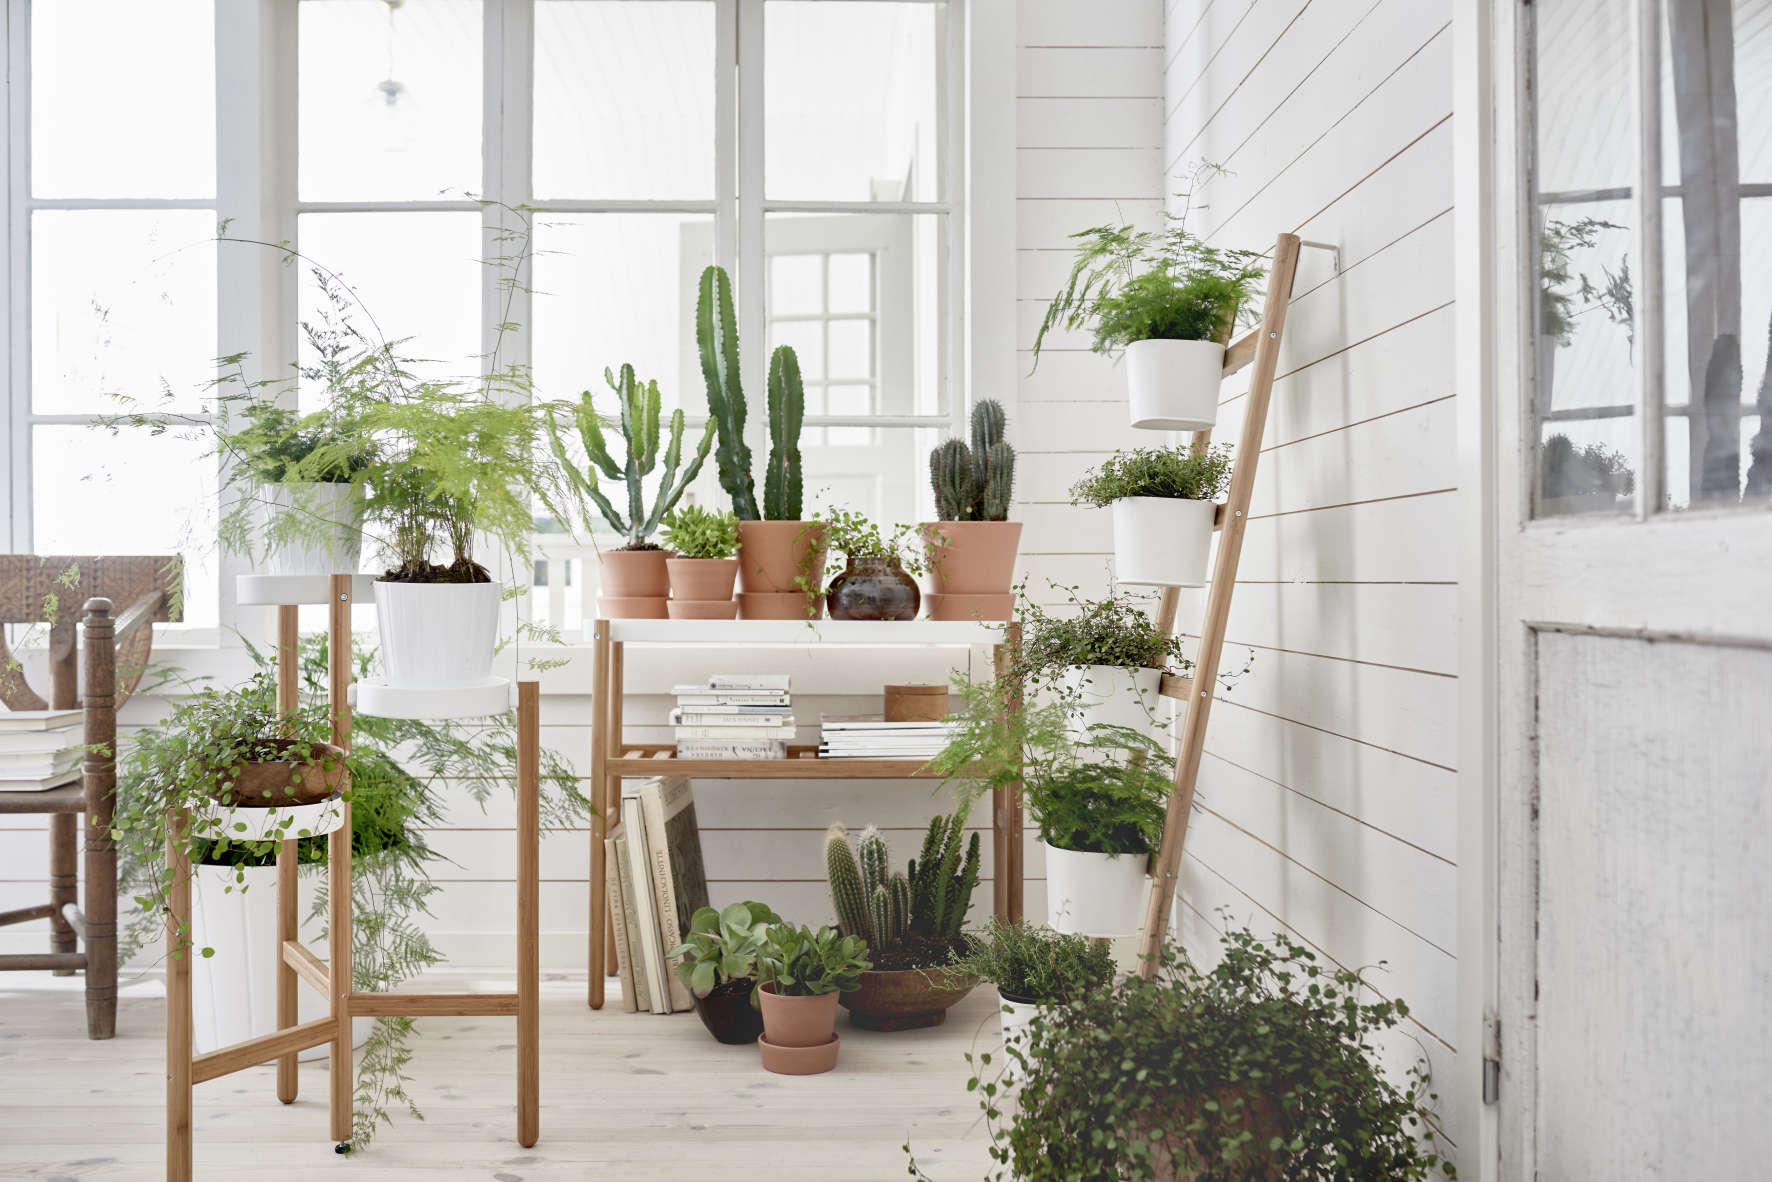 Design Ikea Plant Stand ikea sneak peek new bamboo plant stands and planters gardenista planters